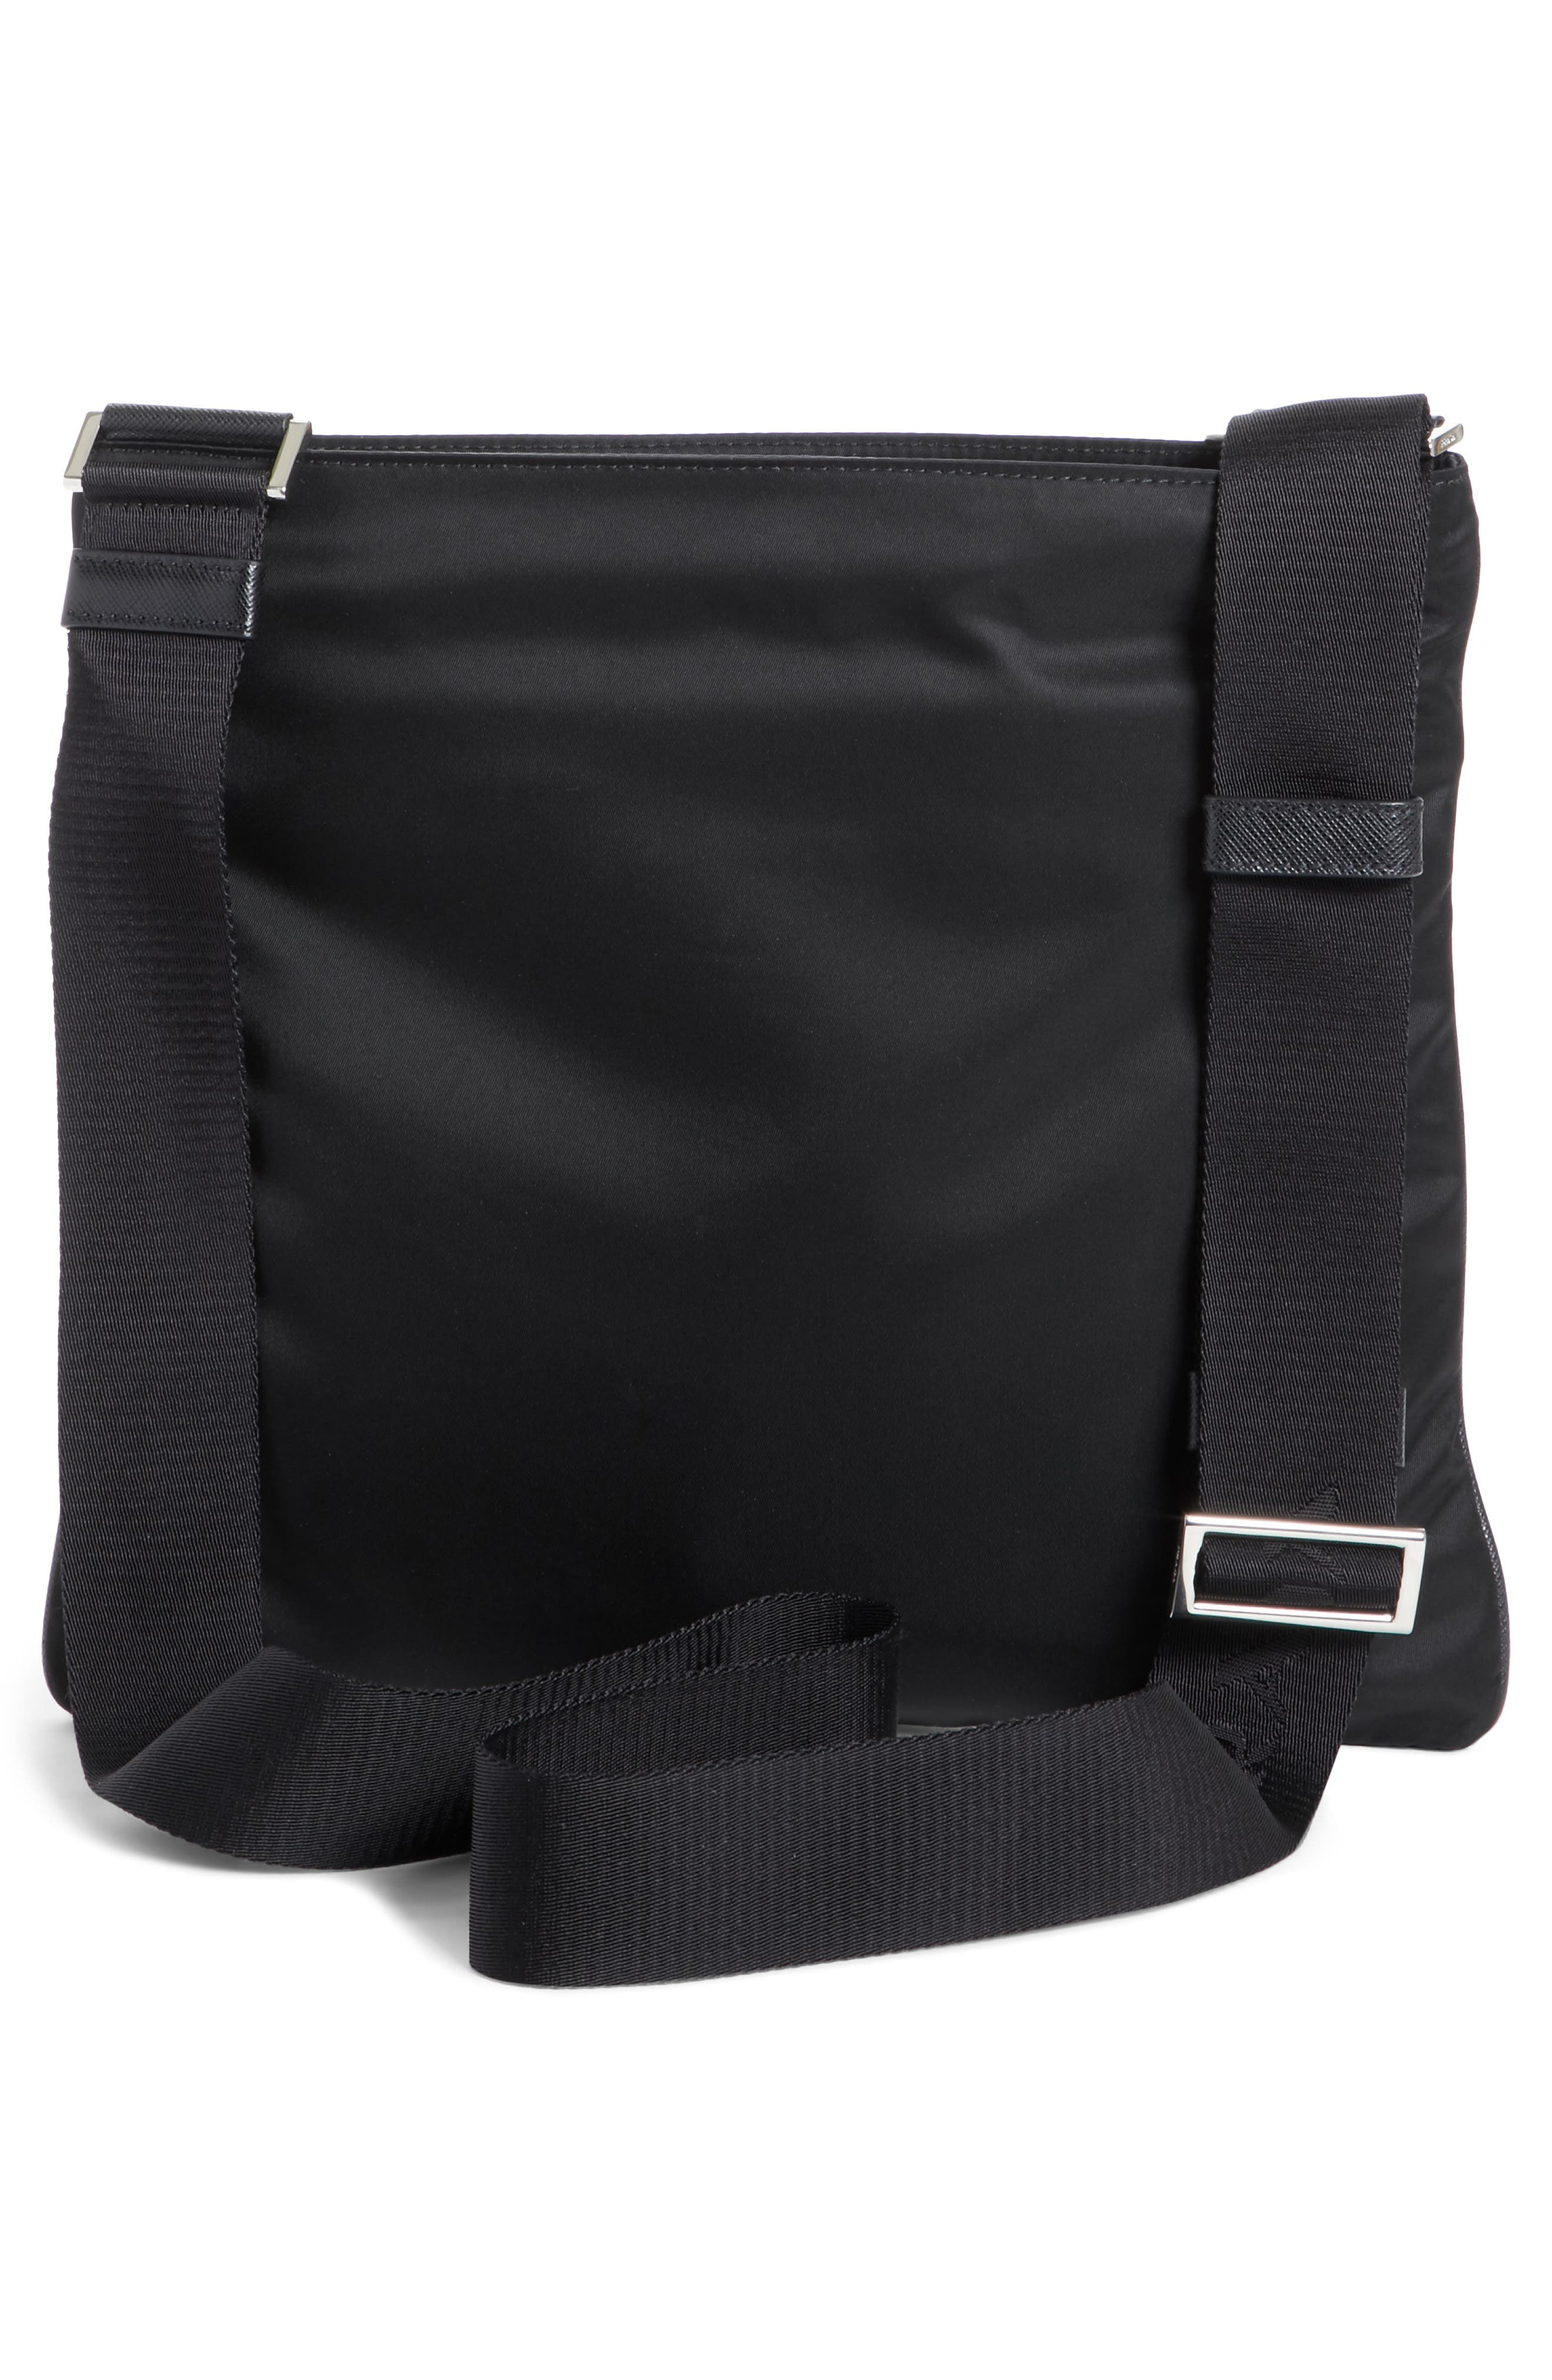 Slim Compact Messenger Bag,                             Alternate thumbnail 3, color,                             NERO